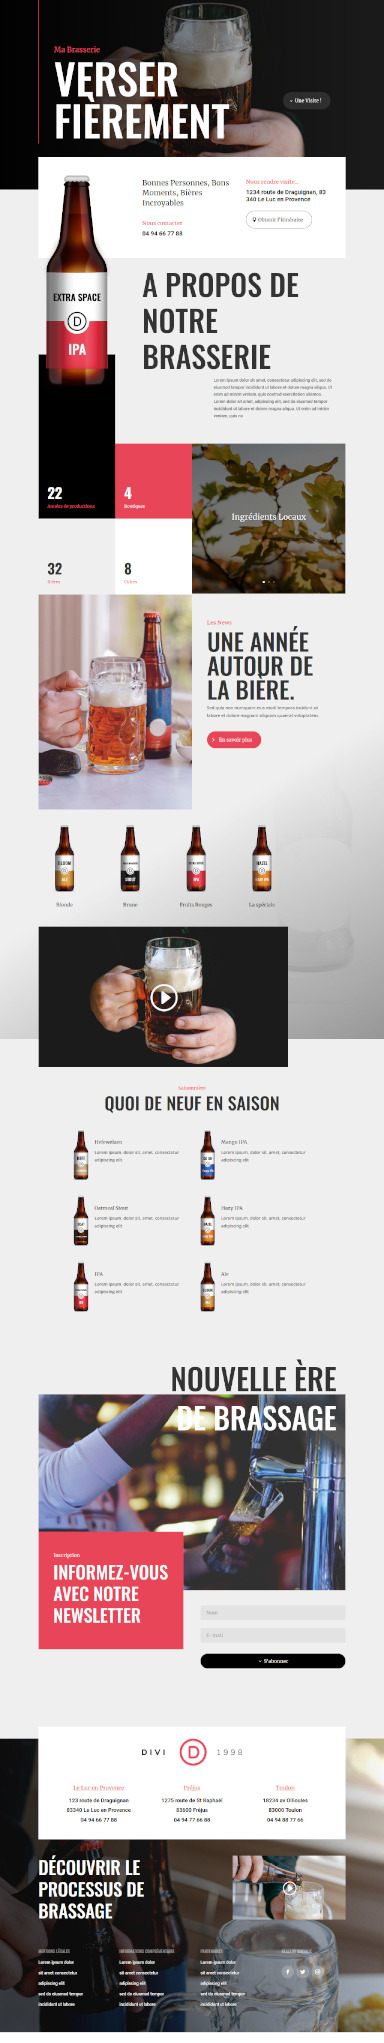 site de brasserie par totum orbem creation de site internet